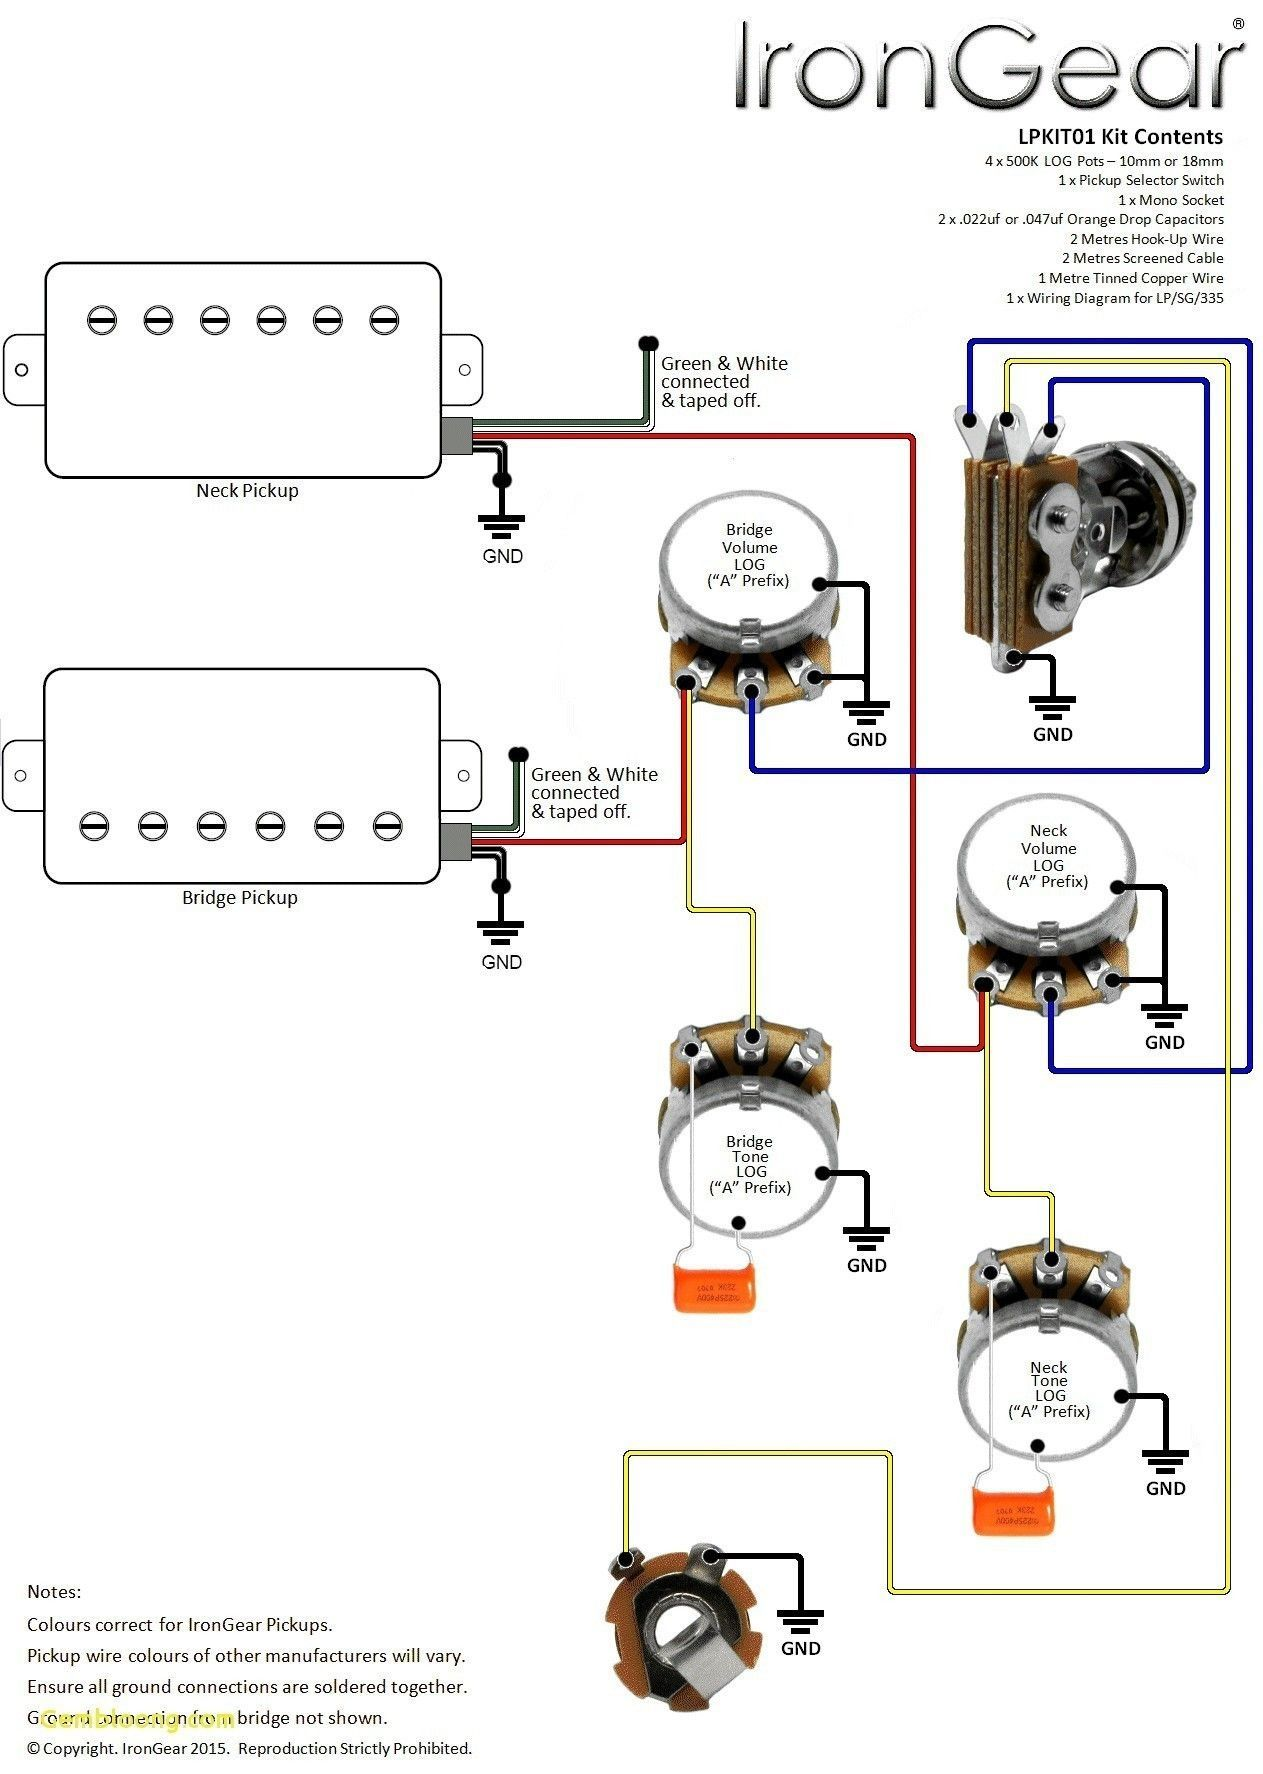 DIAGRAM] Wiring Diagram For Epiphone Gibson Les Paul Special FULL Version  HD Quality Paul Special - TASKDIAGRAM.COLLECTION-PAULETTE.FRtaskdiagram.collection-paulette.fr